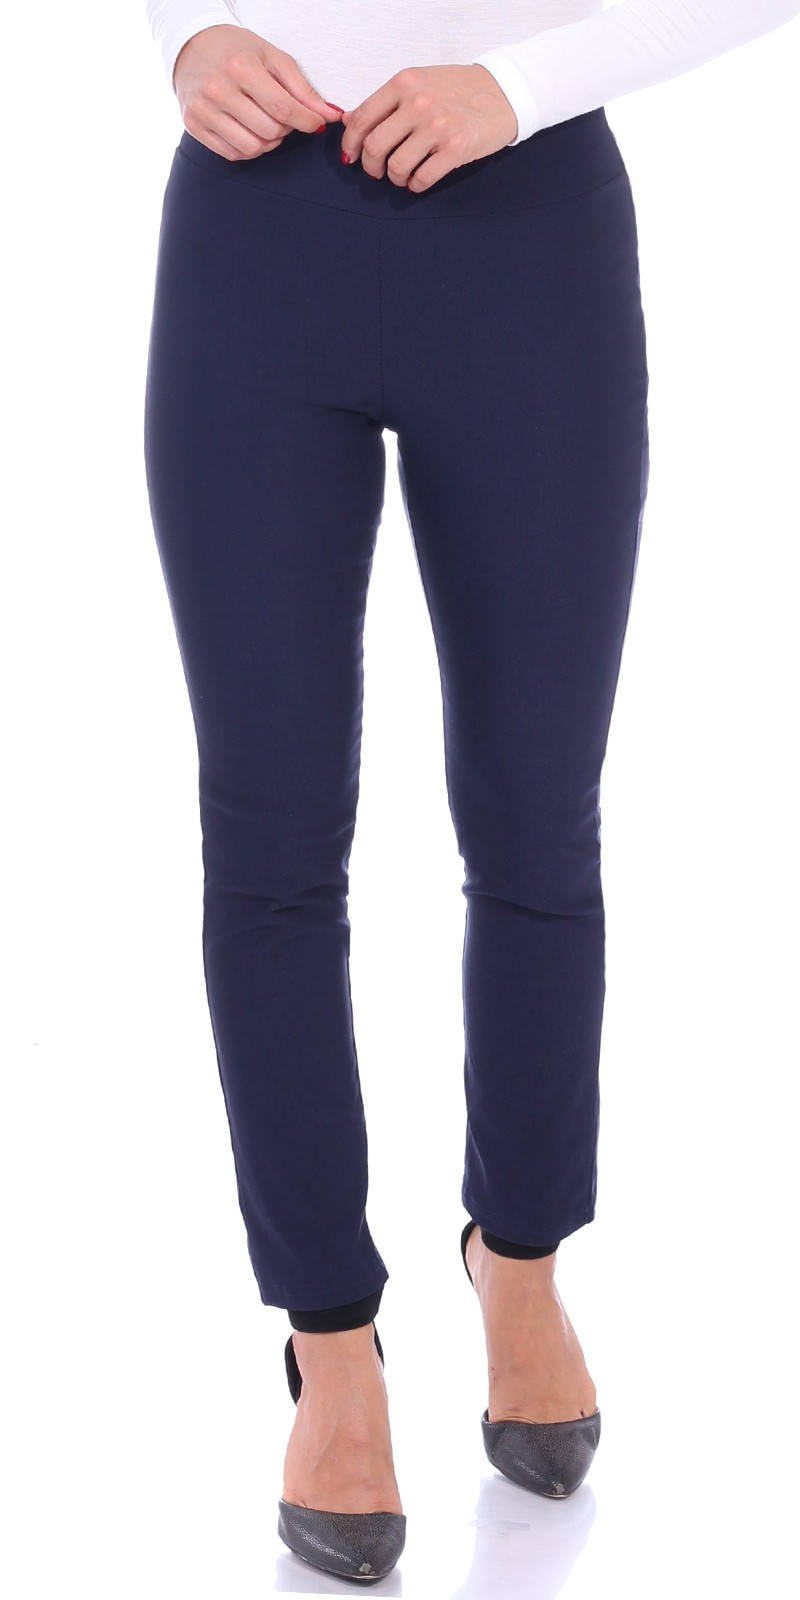 Pull On Pants For Women Ankle Length - Casual Mid Rise Stretch Office Work Pants - Navy